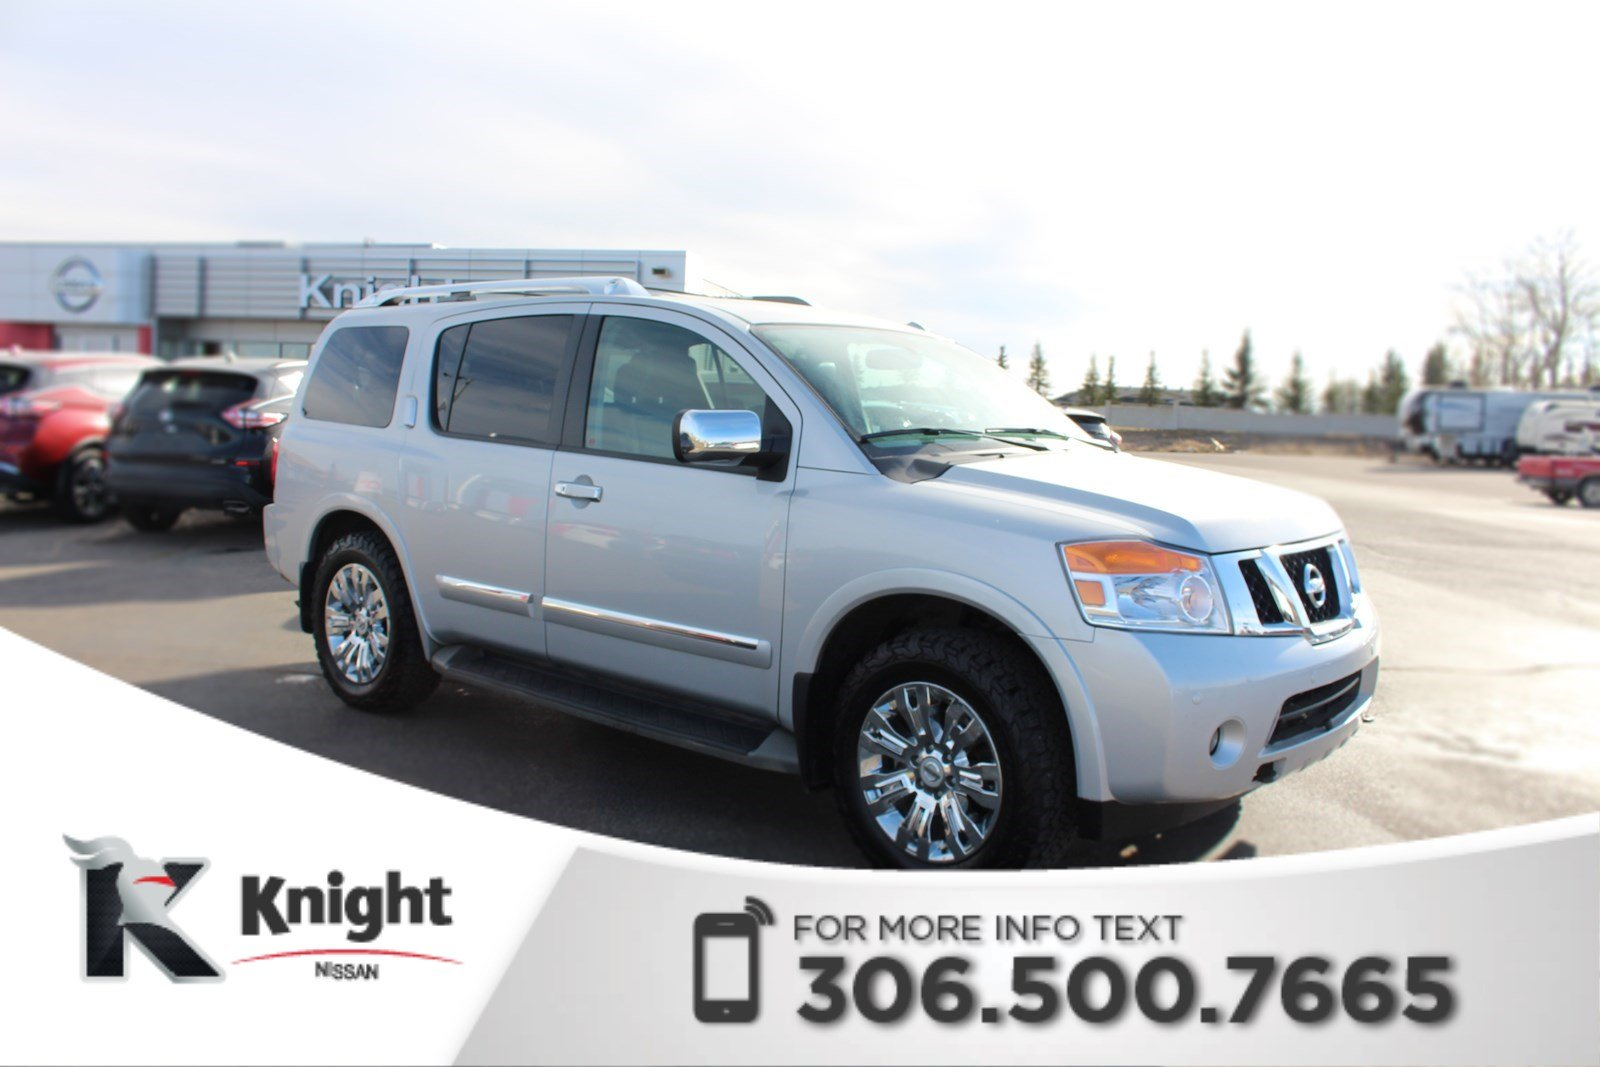 Pre-Owned 2015 Nissan Armada Platinum! DVD Package! Navigation! Heated Seats! Power Tailgate! Key-less Entry!